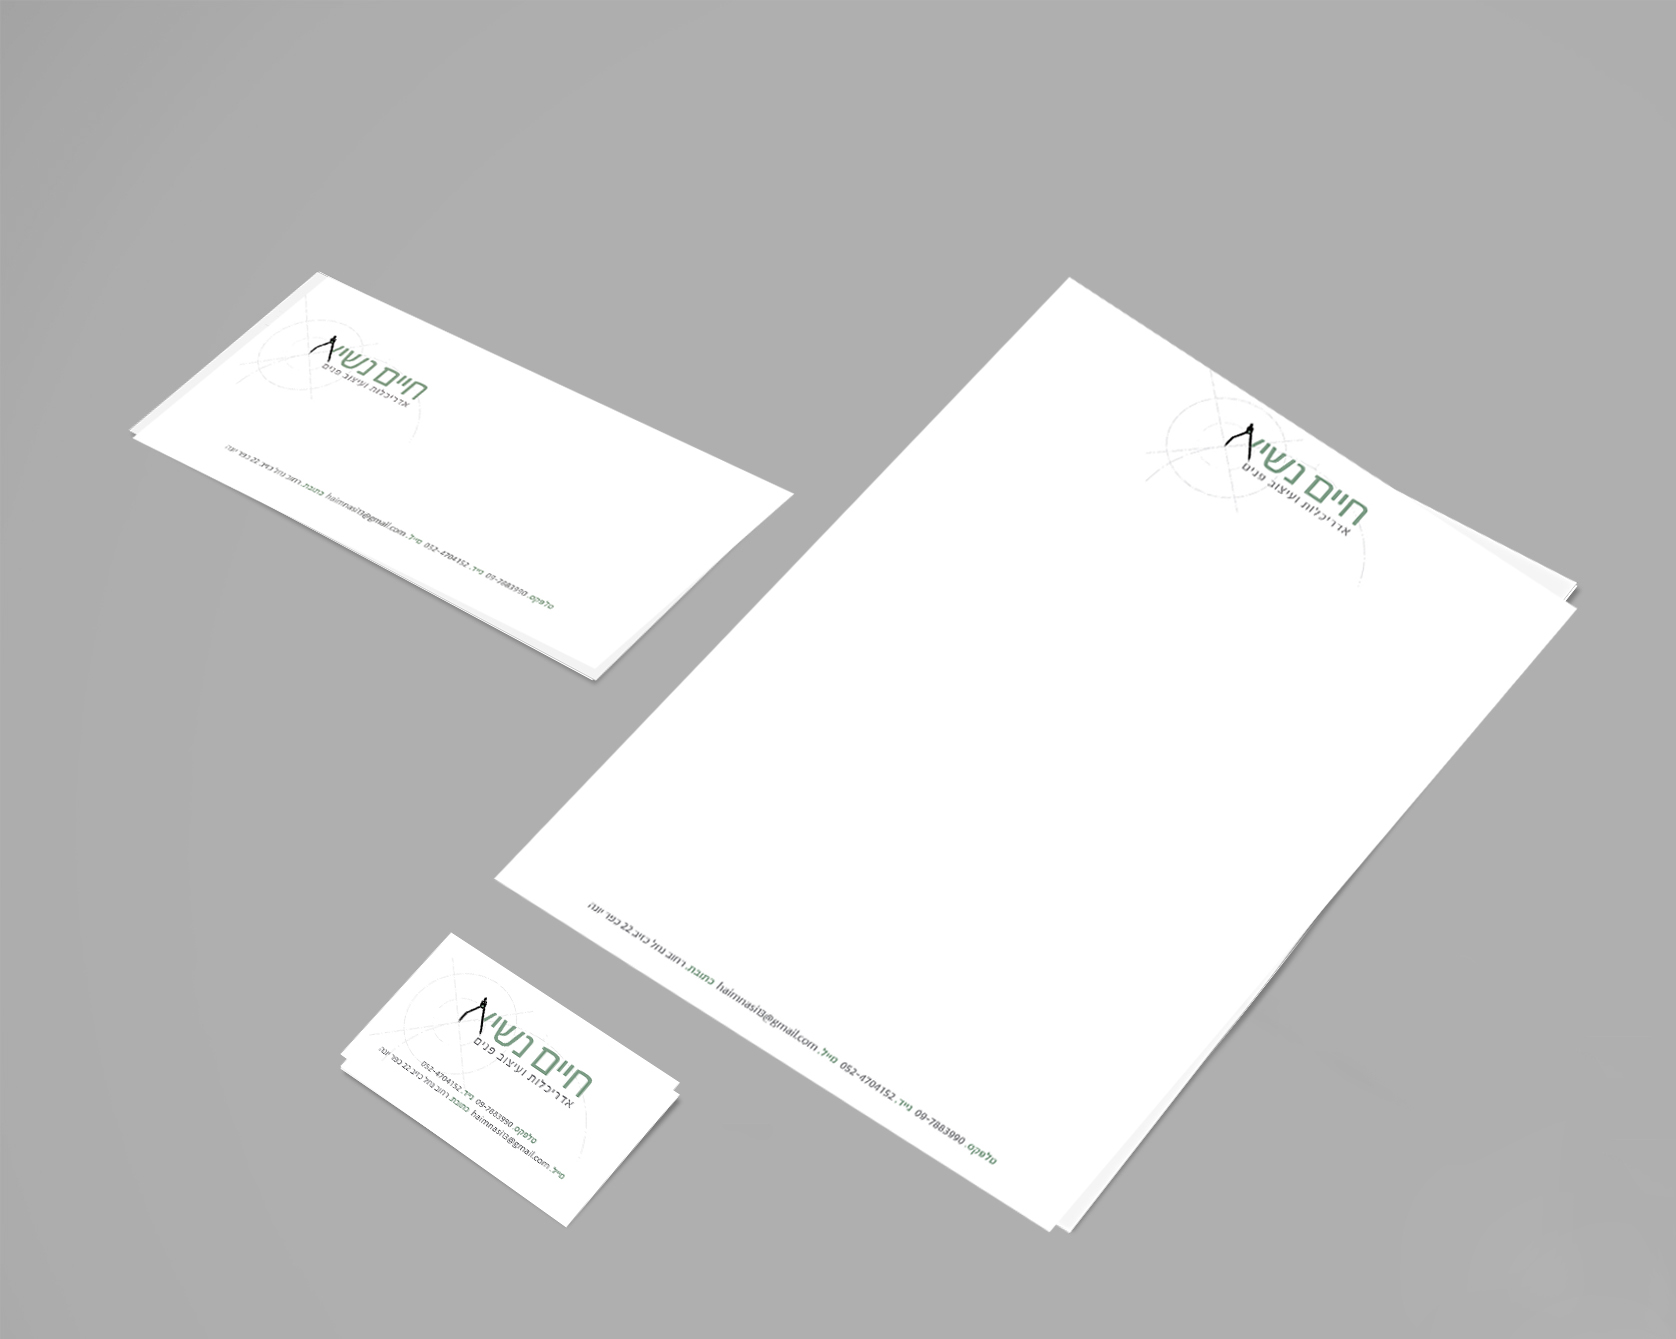 Branding-Stationery Mockup Vol.3 copy